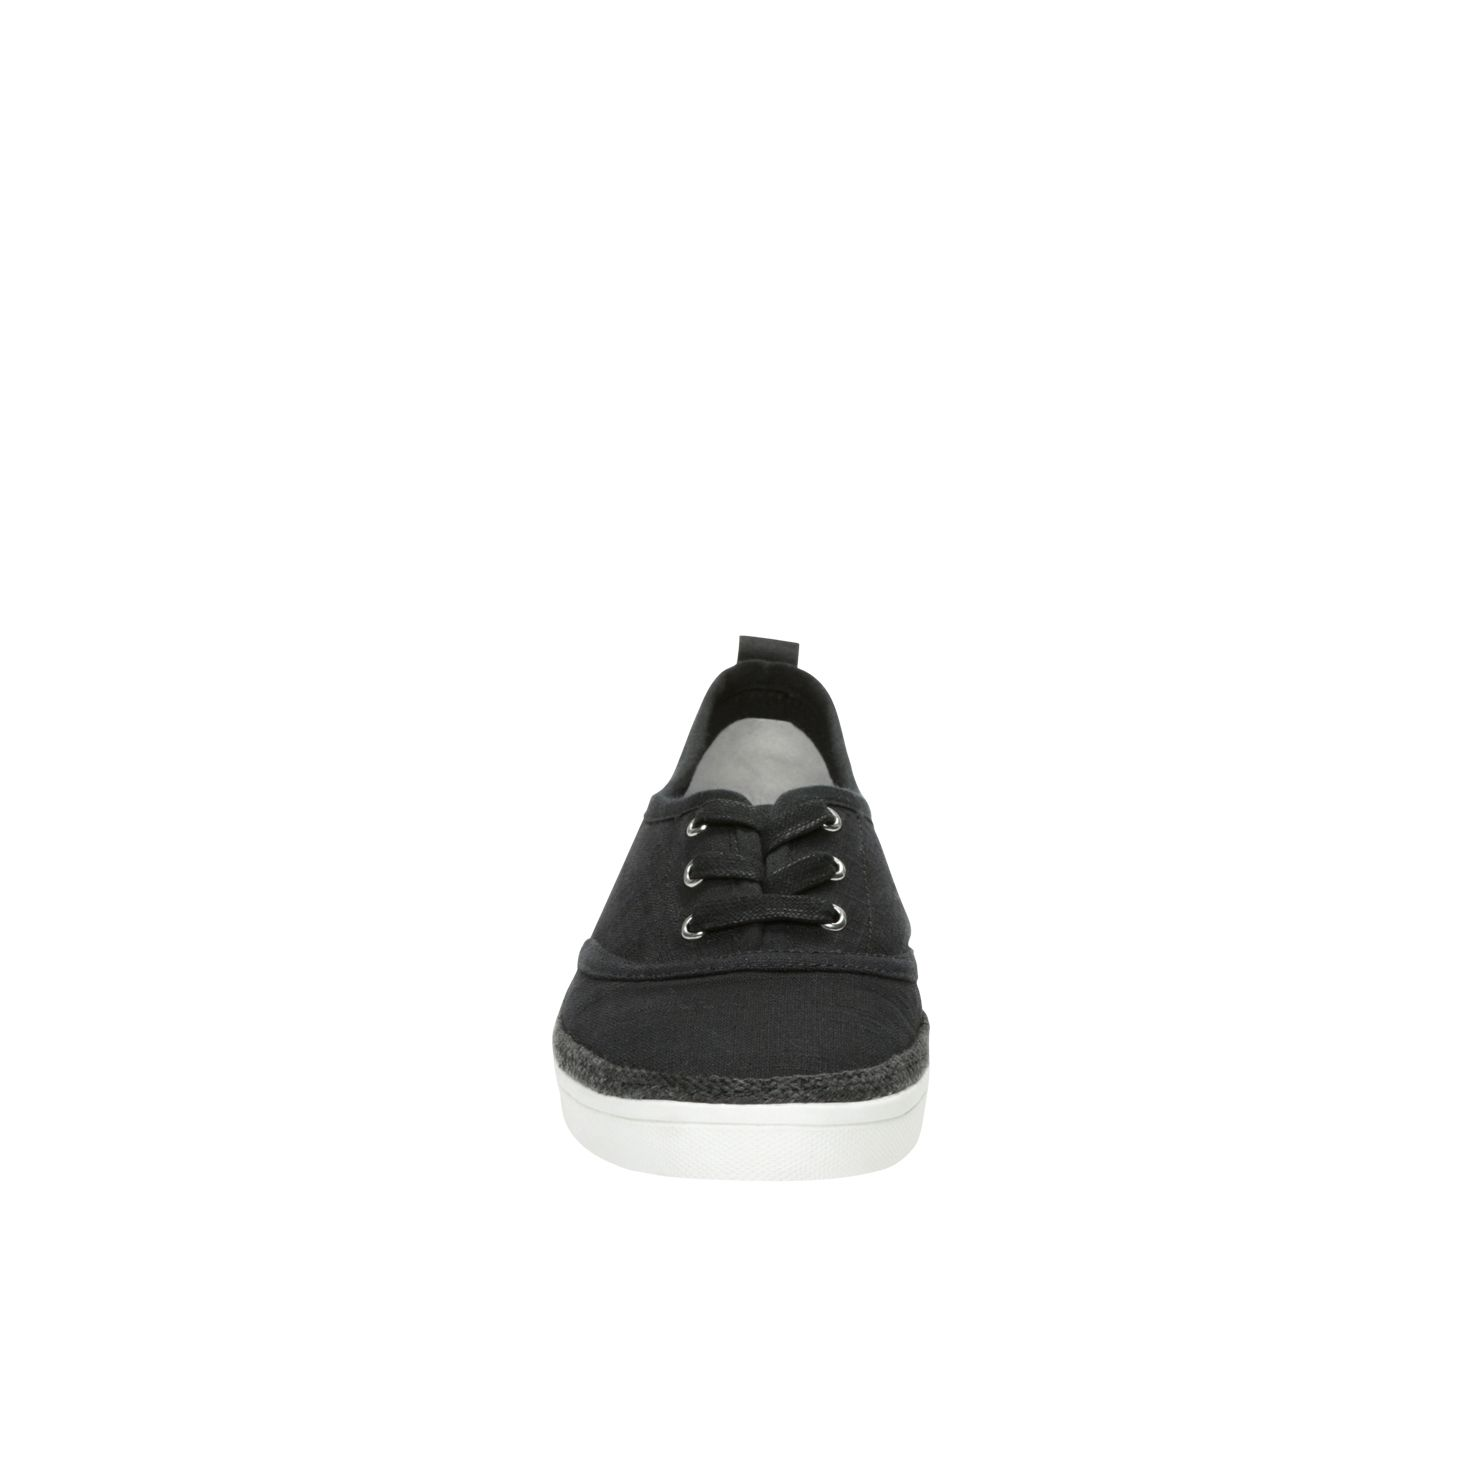 Cherrasien round toe trainer shoes